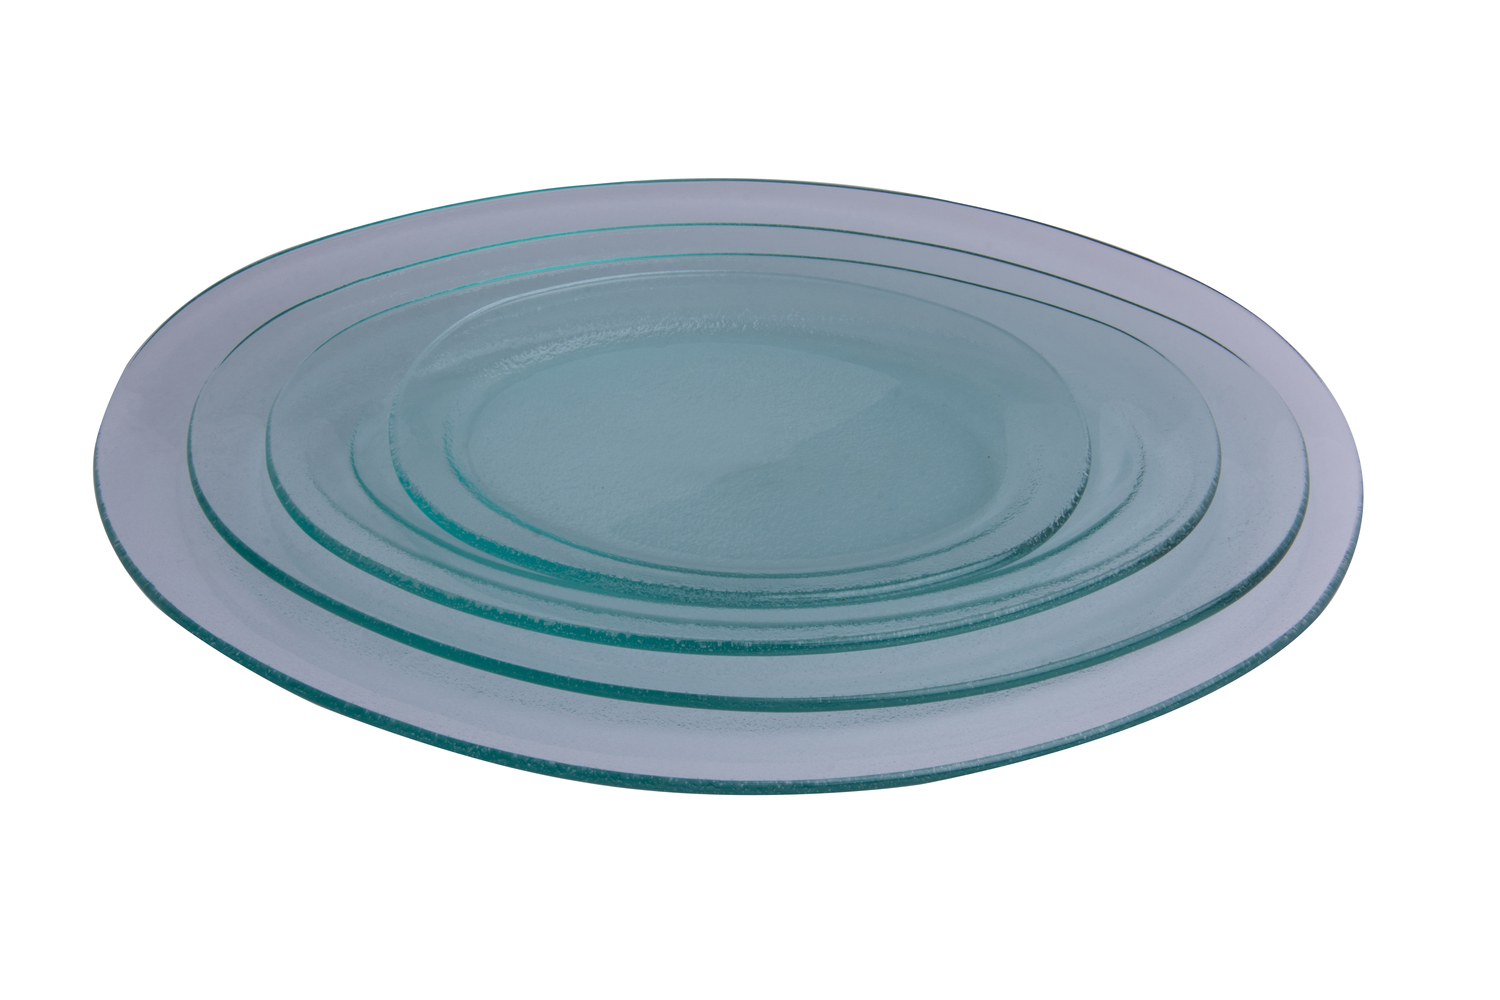 Oval Plate Tempered 28.5 x 17 cm